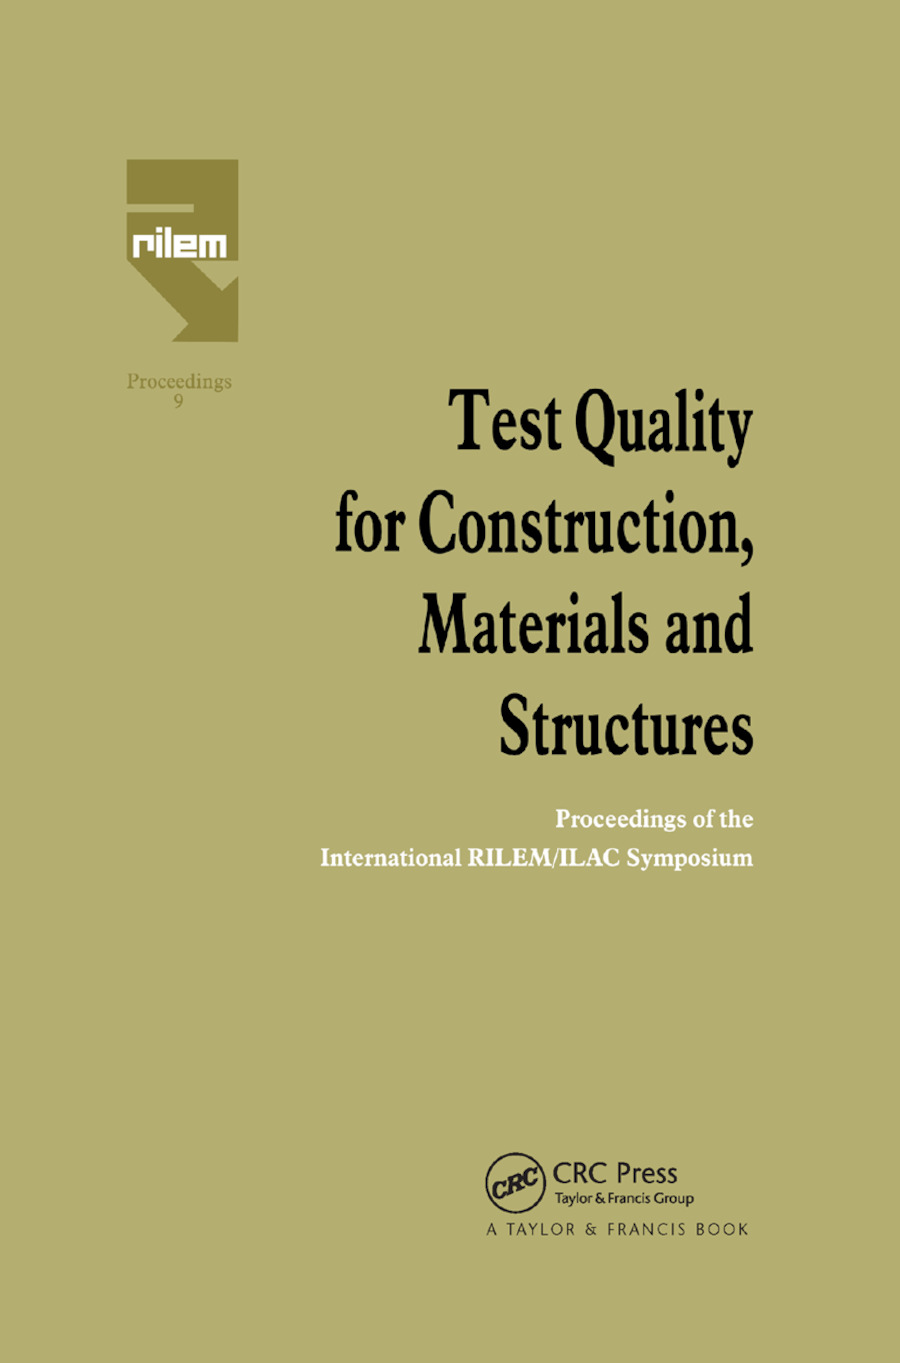 Test Quality for Construction, Materials and Structures: Proceedings of the International RILEM/ILAC Symposium book cover